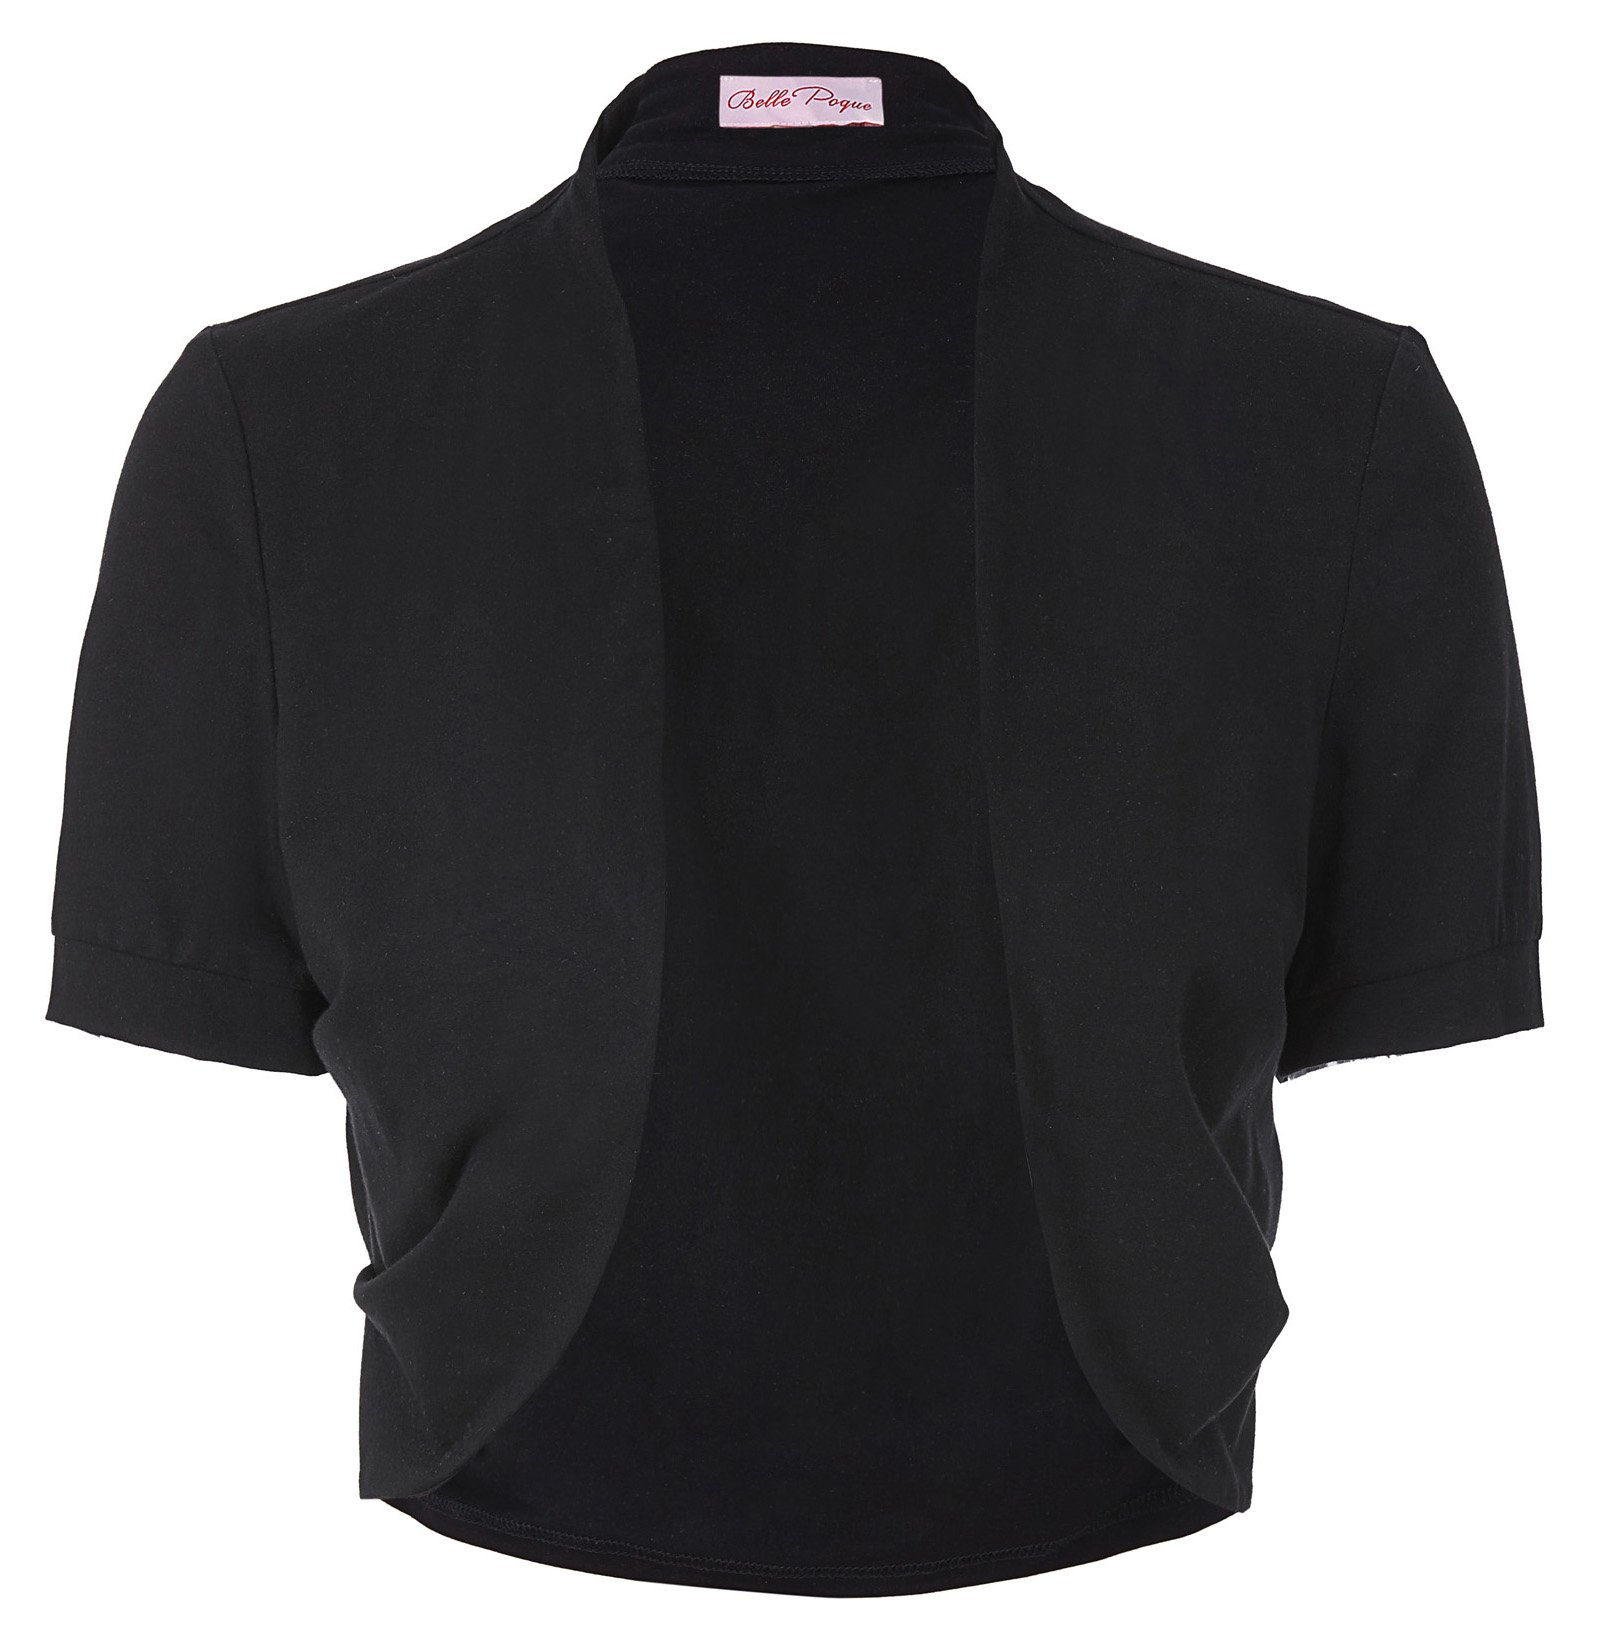 Basic Cotton Pleated Sides Bolero Shrug for Women (L, Black 215-1)